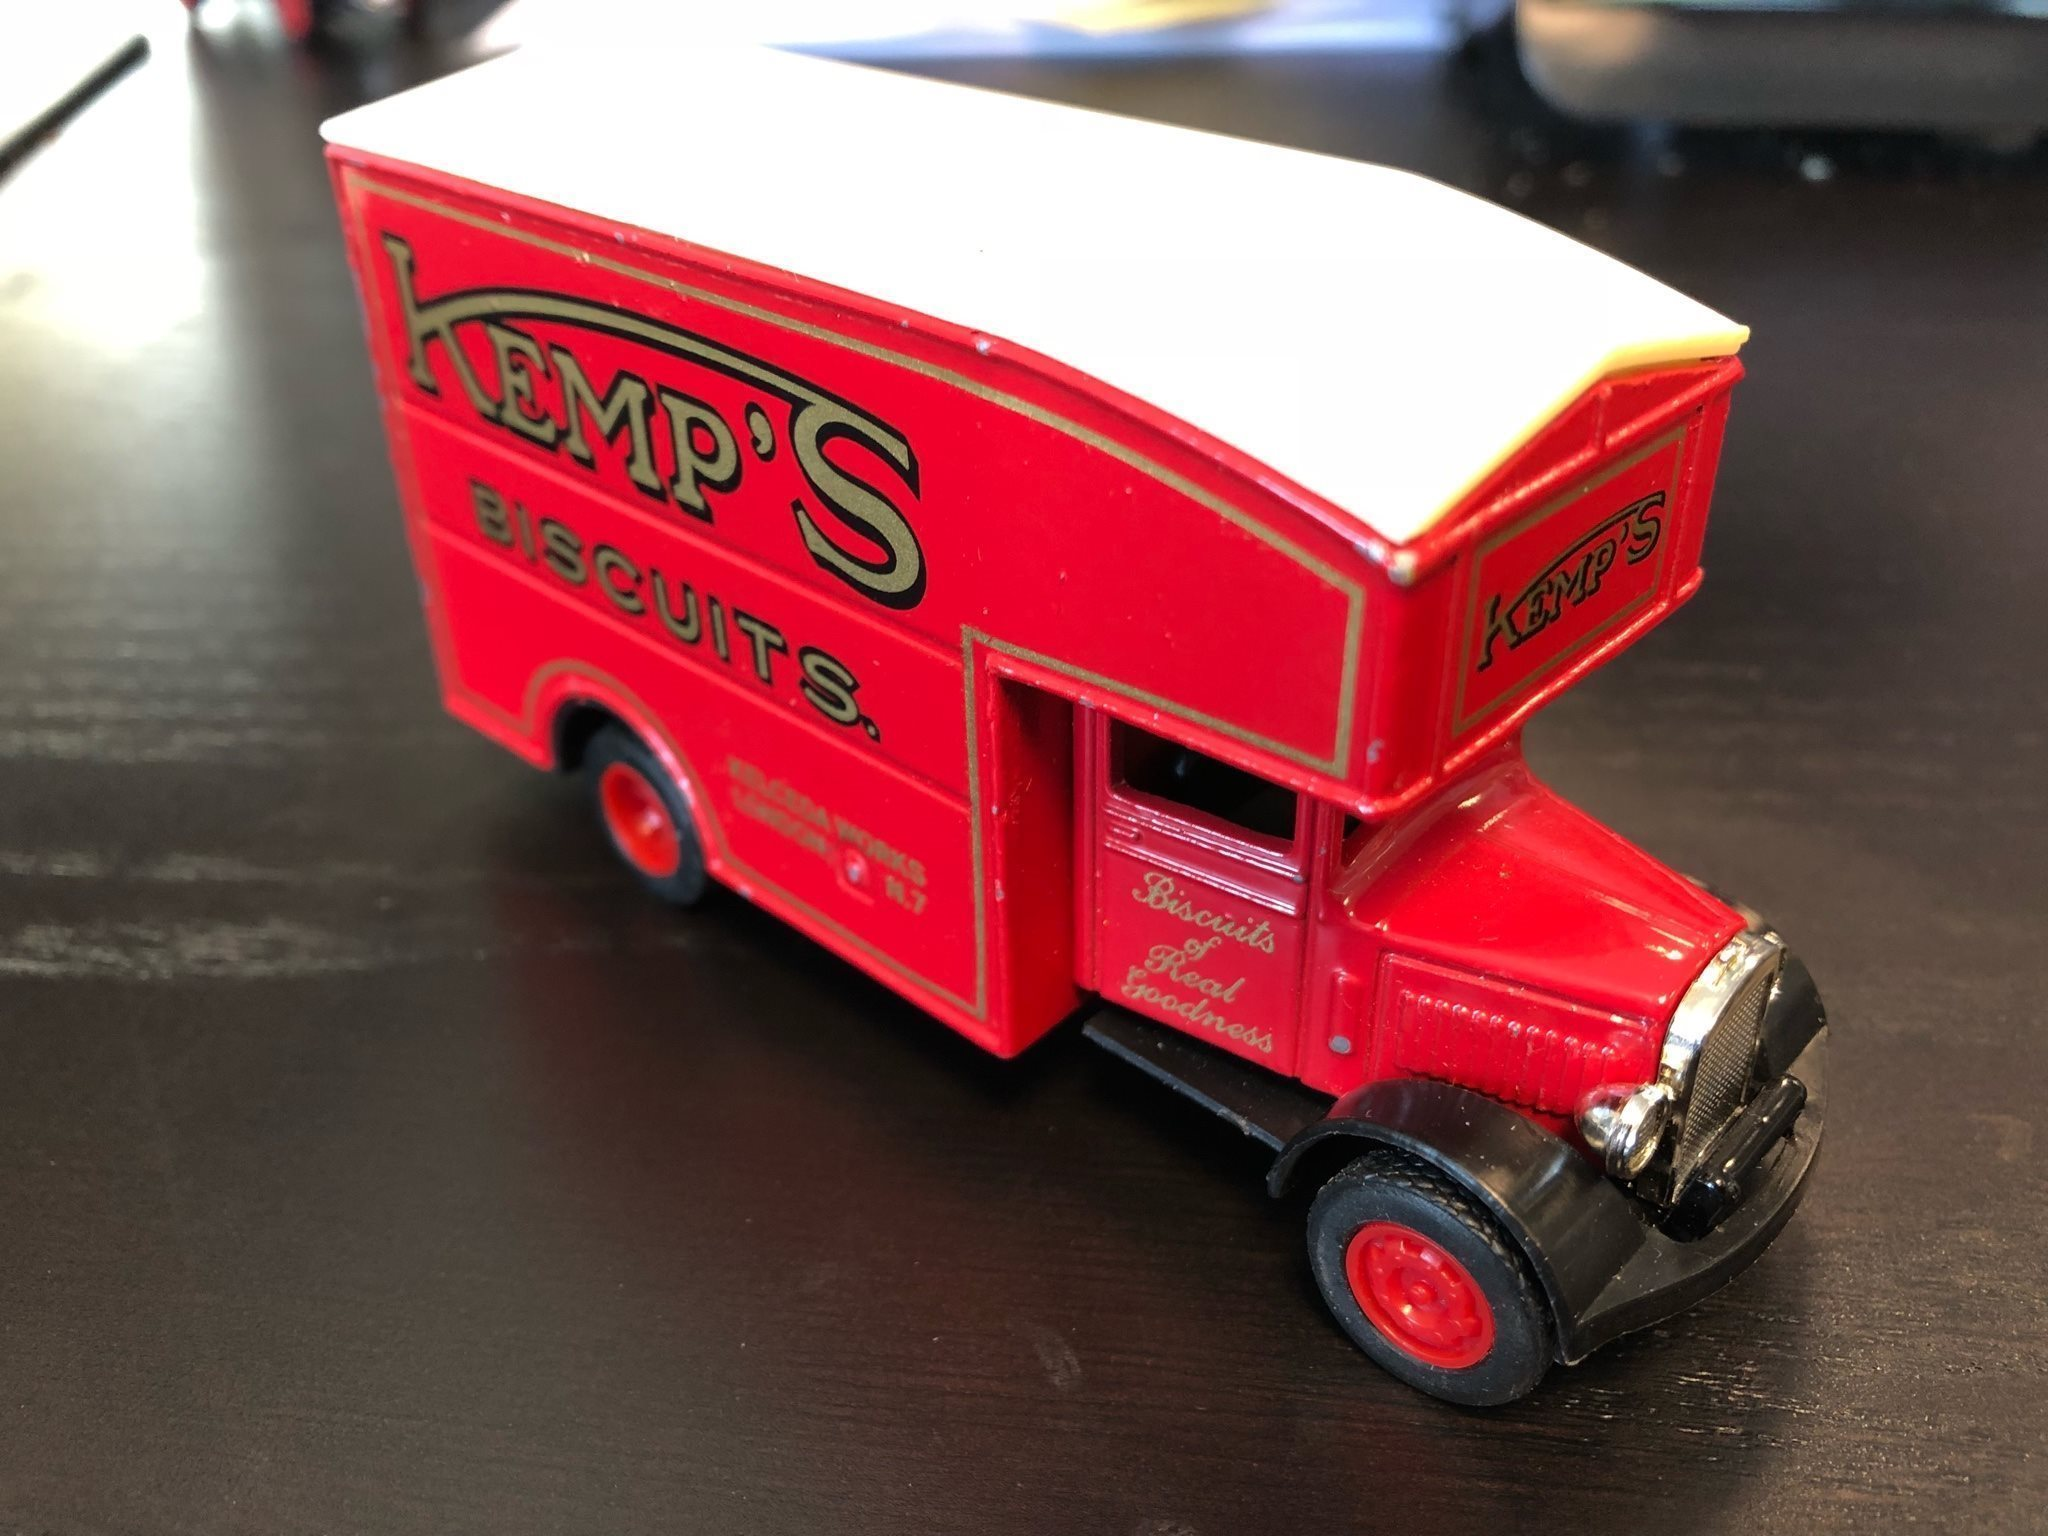 LESNEY/MATCHBOX MODELS OF YESTERYEAR No 31 Morris Courier 1931 Kemp's